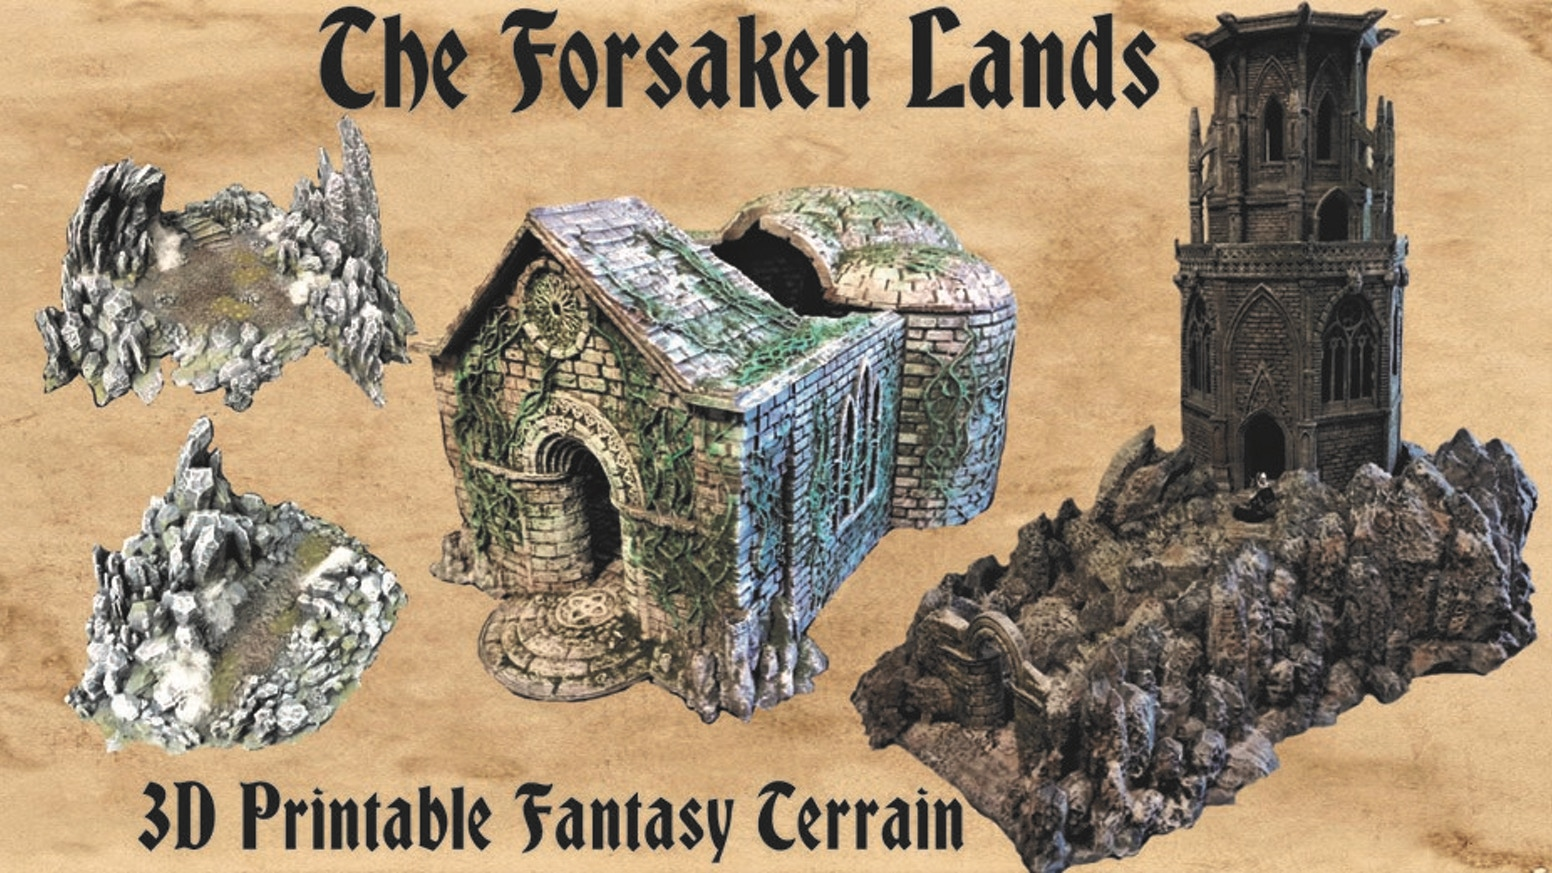 A 3D printable terrain STL set featuring highly detailed fantasy and architectural designs for tabletop miniature war games and RPGs.